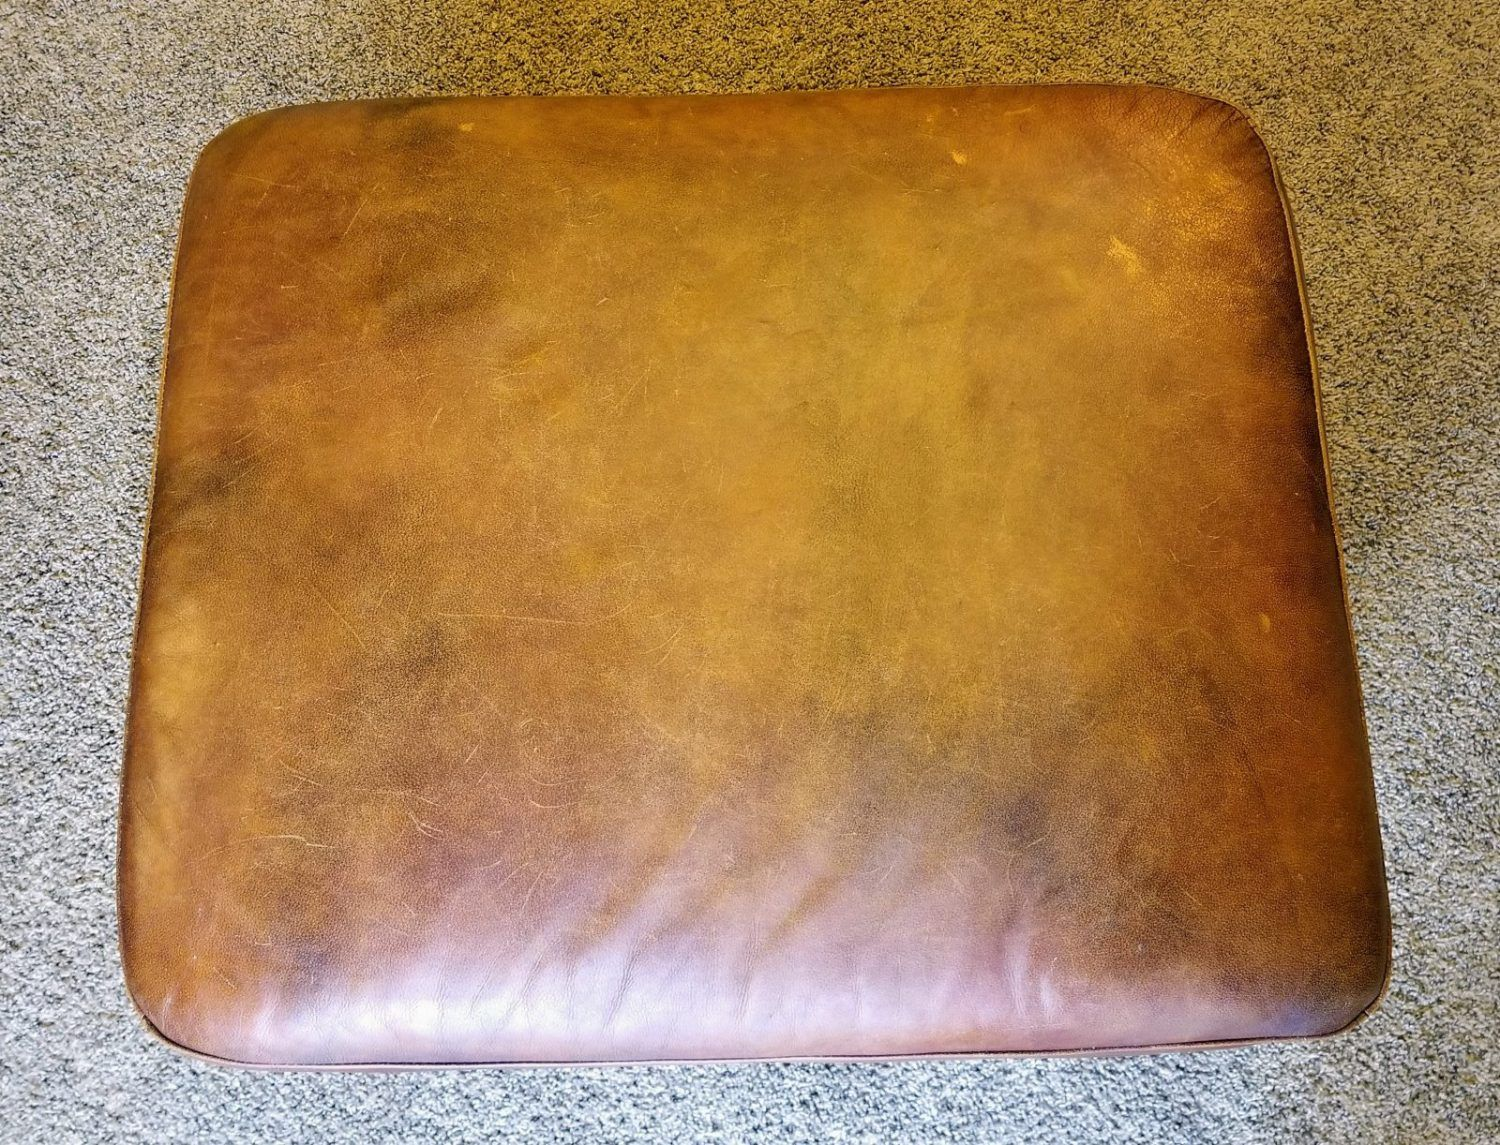 Awesome Leather Couch Conditioner Homemade Best Leather Couch Conditioner Homemade Leather Conditioner Diy Cleaning Leather Furniture Cleaning Leather Couch